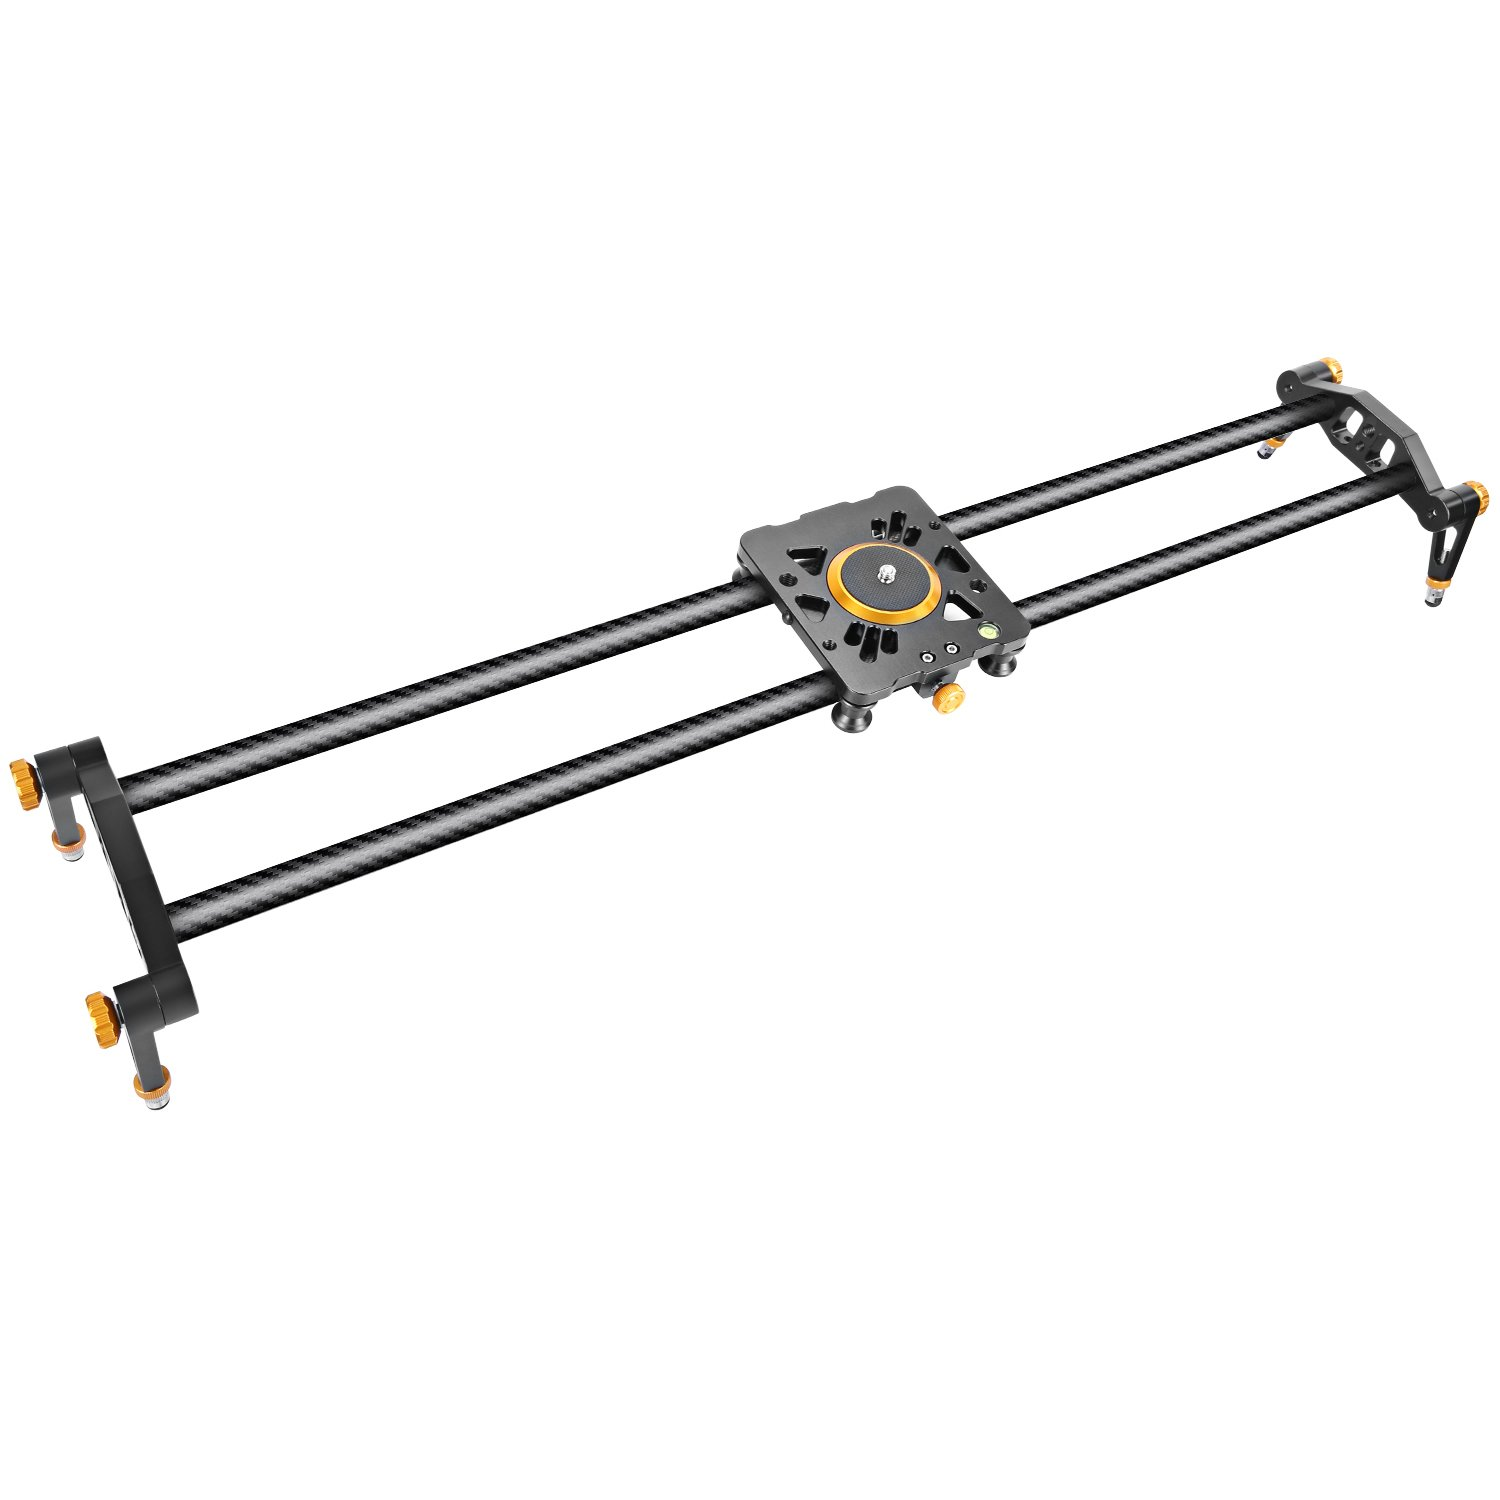 Neewer 23.6 inches/60 centimeters Carbon Fiber Camera Track Slider Video Stabilizer Rail with 6 Bearings for DSLR Camera DV Video Camcorder Film Photography, Load up to 17.5 pounds/8 kilograms by Neewer